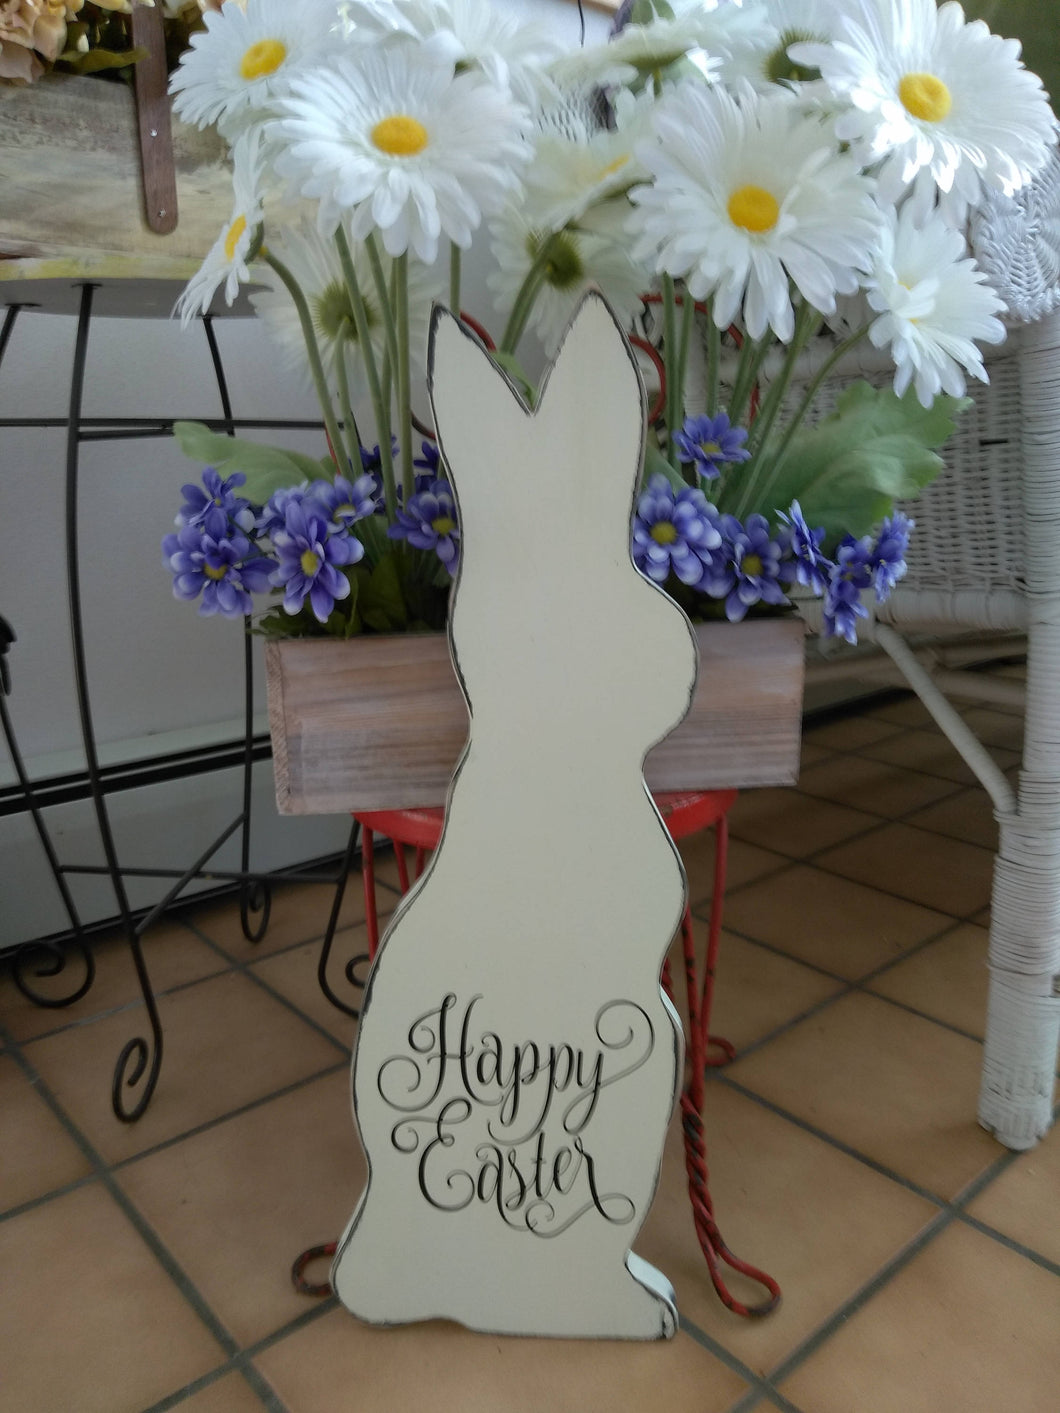 Bunny Rabbit Happy Easter Distressed Rustic Farmhouse Wood Vinyl Sign Spring Wall Hanging Door Wooden Cutout Outdoor Front Door Decor Plaque